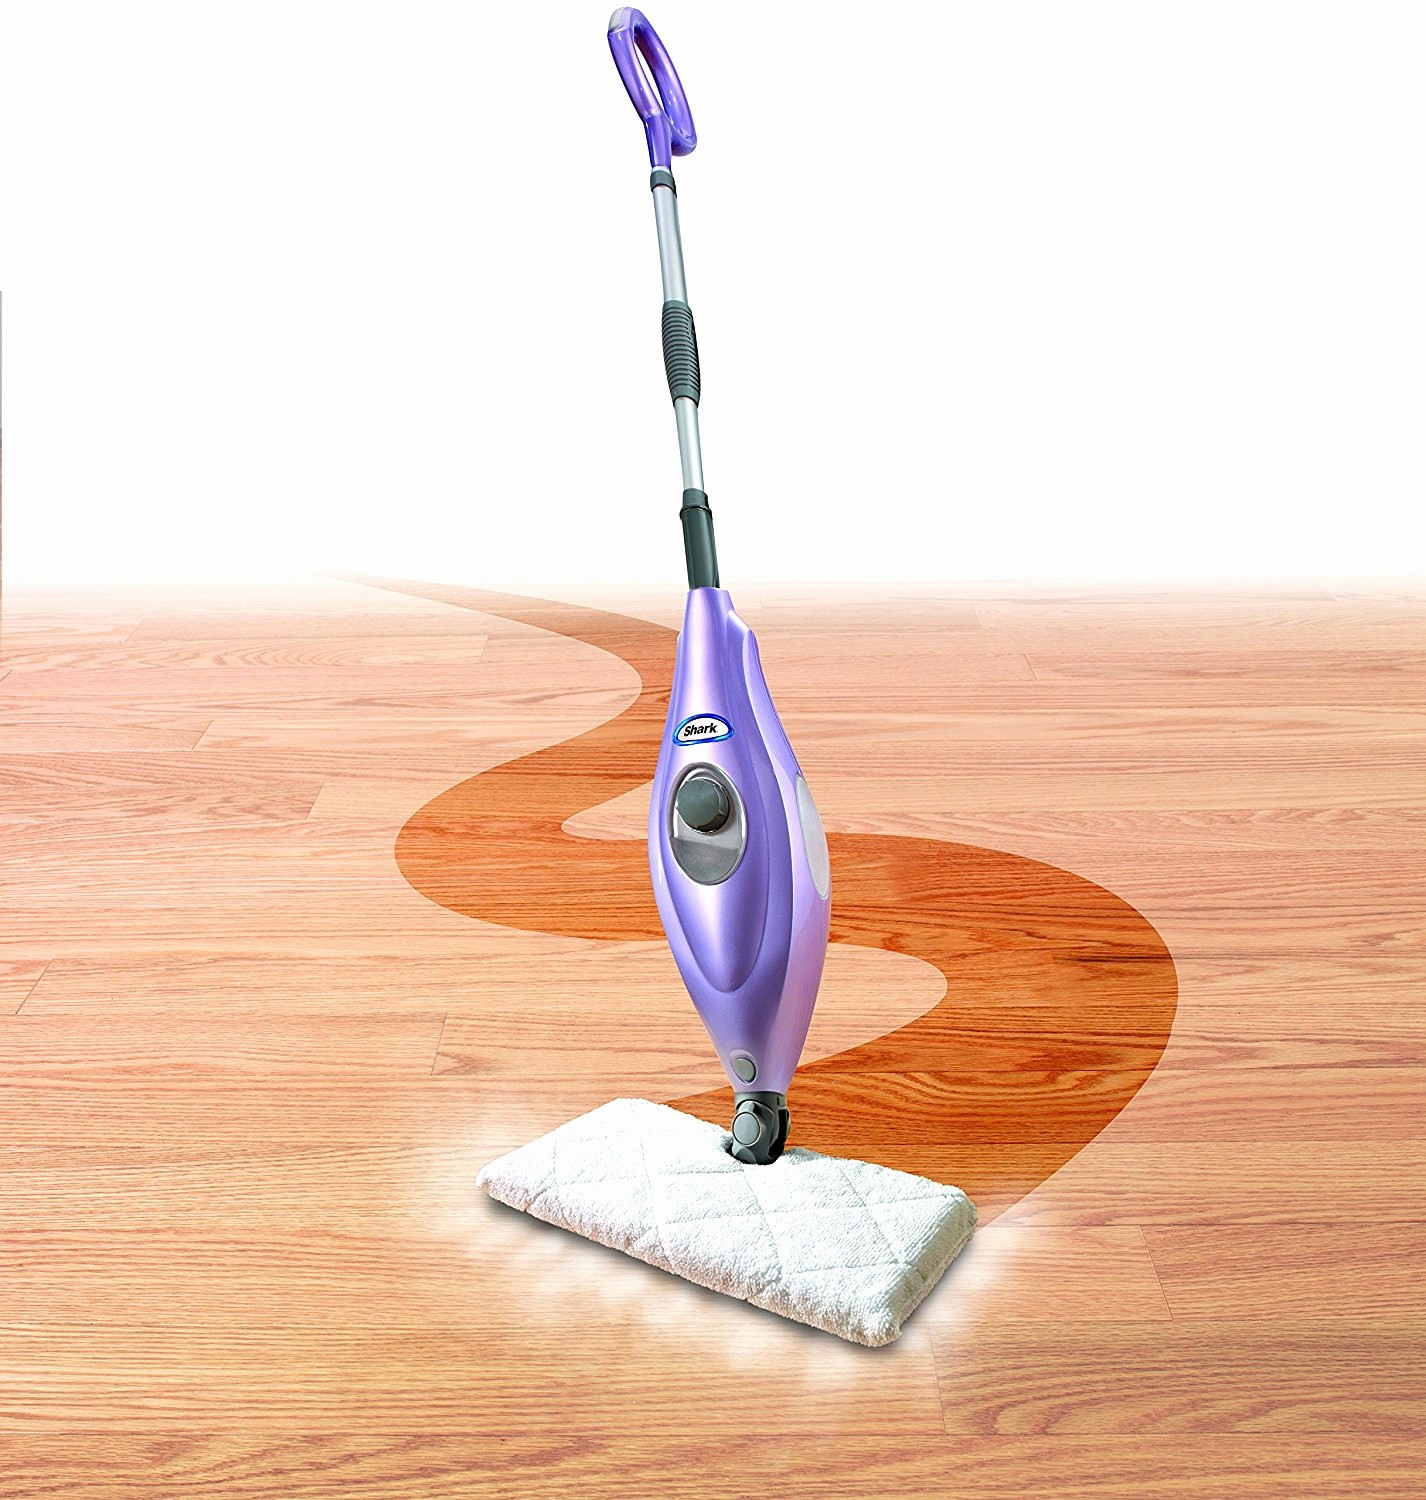 Bona Hardwood Floor Cleaning Machine Of 16 Inspirational How to Polish Hardwood Floors Photos Dizpos Com In How to Polish Hardwood Floors Unique 50 Luxury Bona Hardwood Floor Graphics 50 S Gallery Of